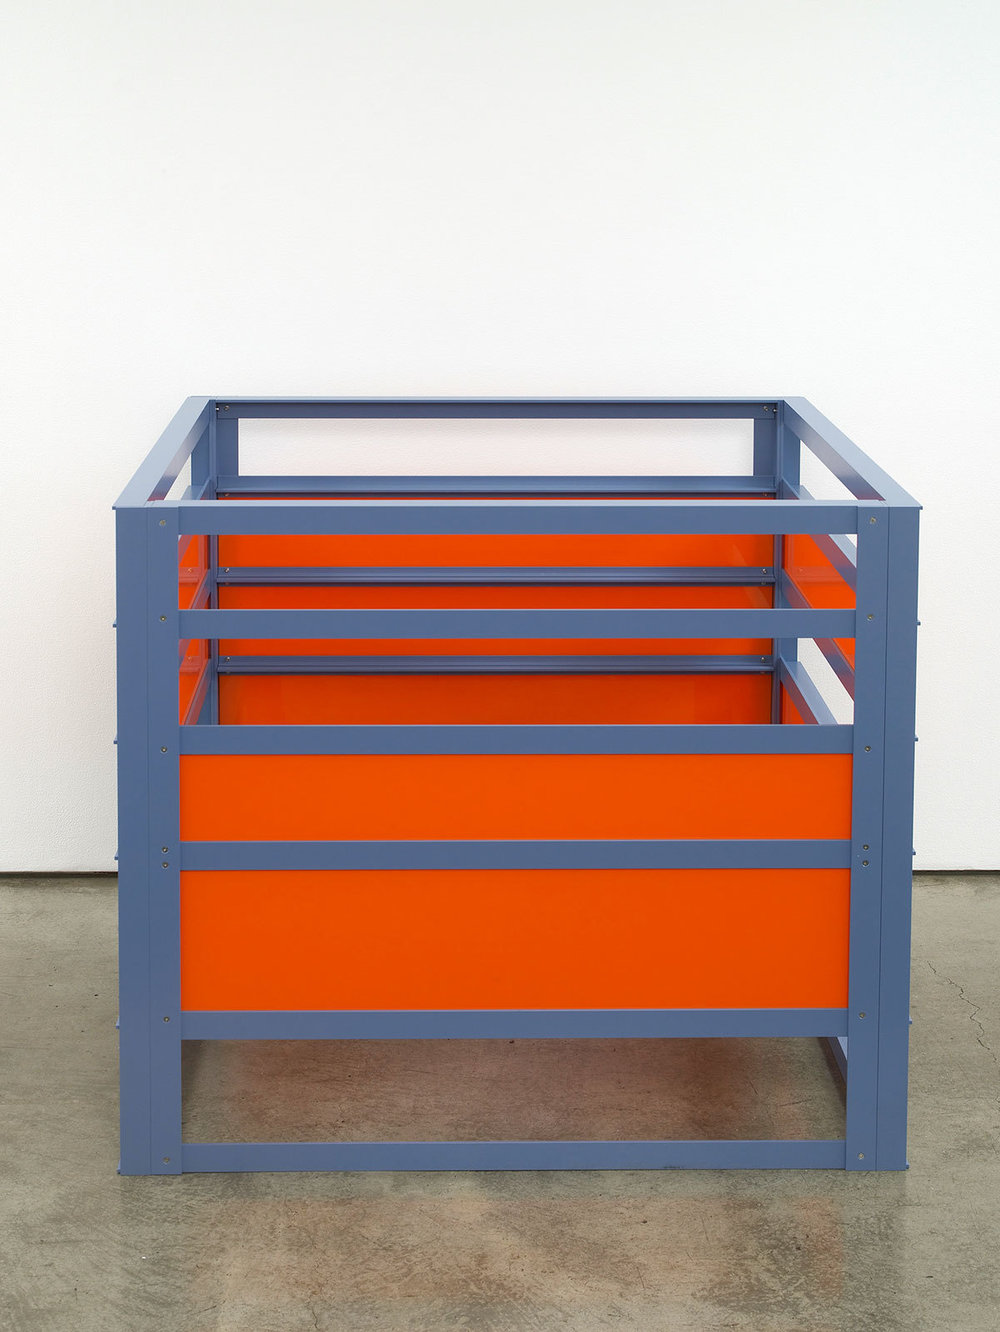 Maureen-Paley-Liam-Gillick-Artwork-Waldenicity-2001.jpg